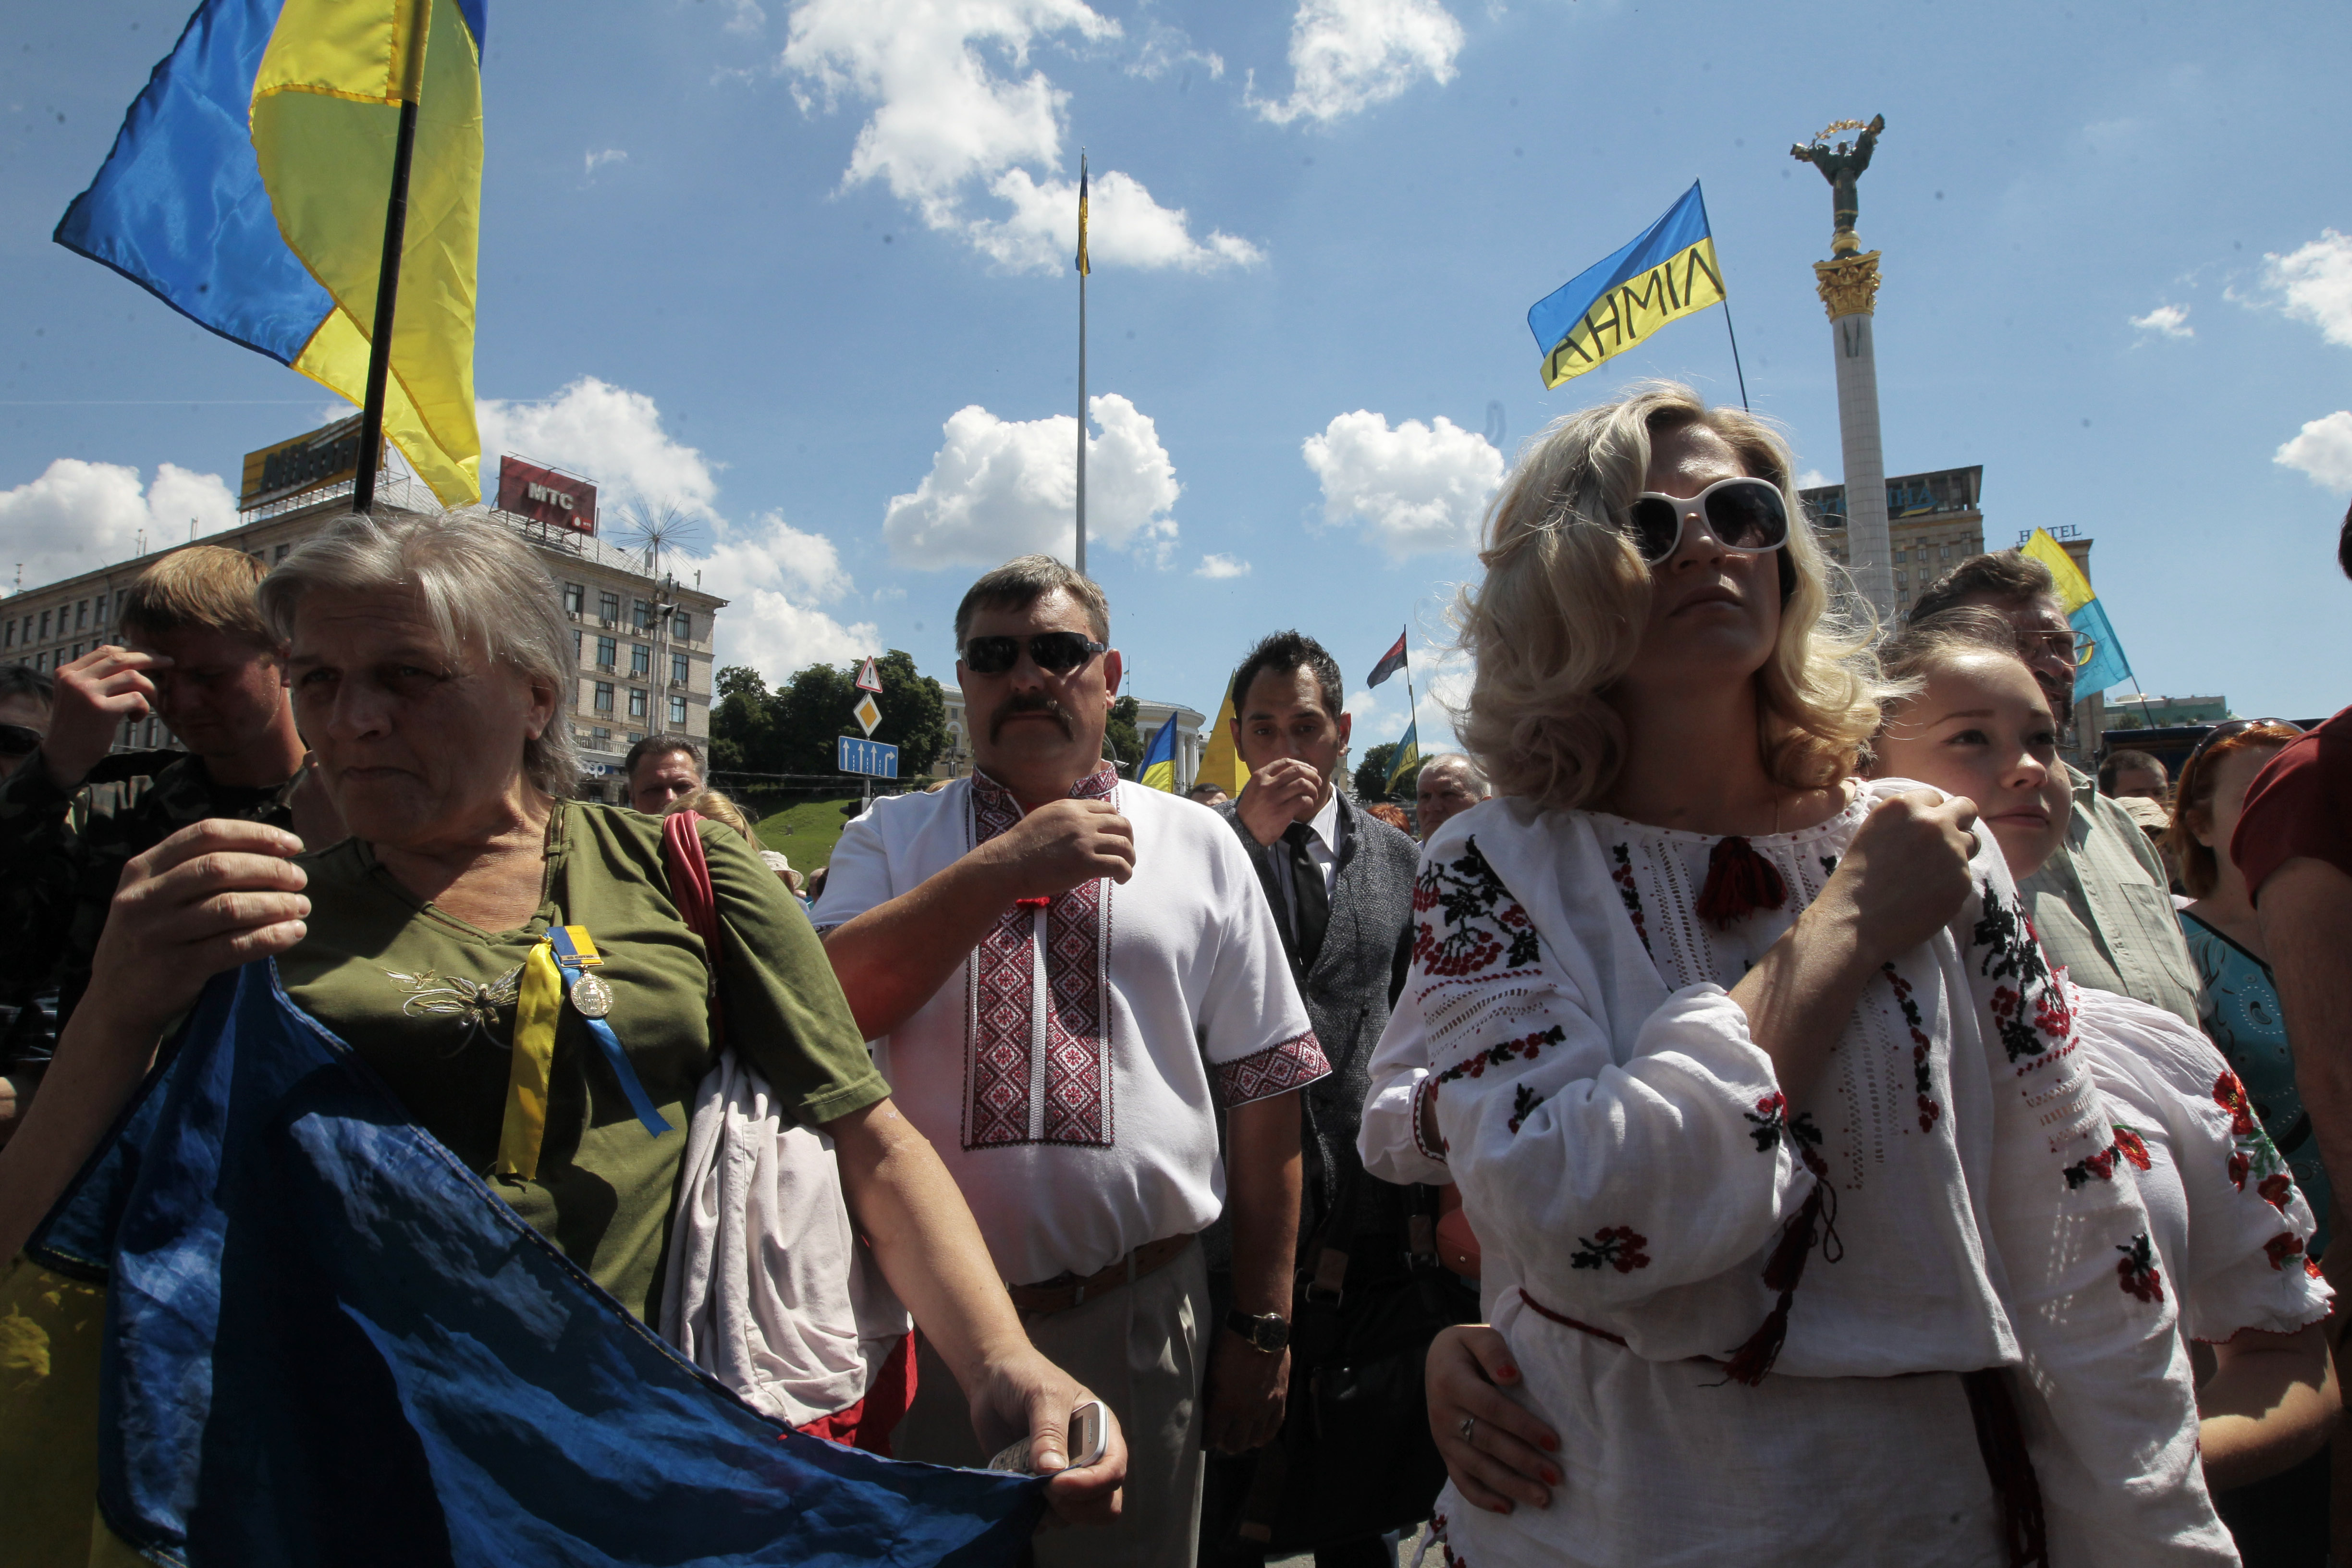 People pray during a rally in Independence Square in Kiev, Ukraine, Sunday, June 29, 2014. Hundreds of people have come on Sunday morning to the presidential administration to demand a stop to the cease fire on the eastern part of Ukraine. According to soldiers of the Donbass battalion, the other side hasn't stopped attacks and around 20 soldiers were killed during the last week that suppose to be a pause in active fighting. (AP Photo/Sergei Chuzavkov)